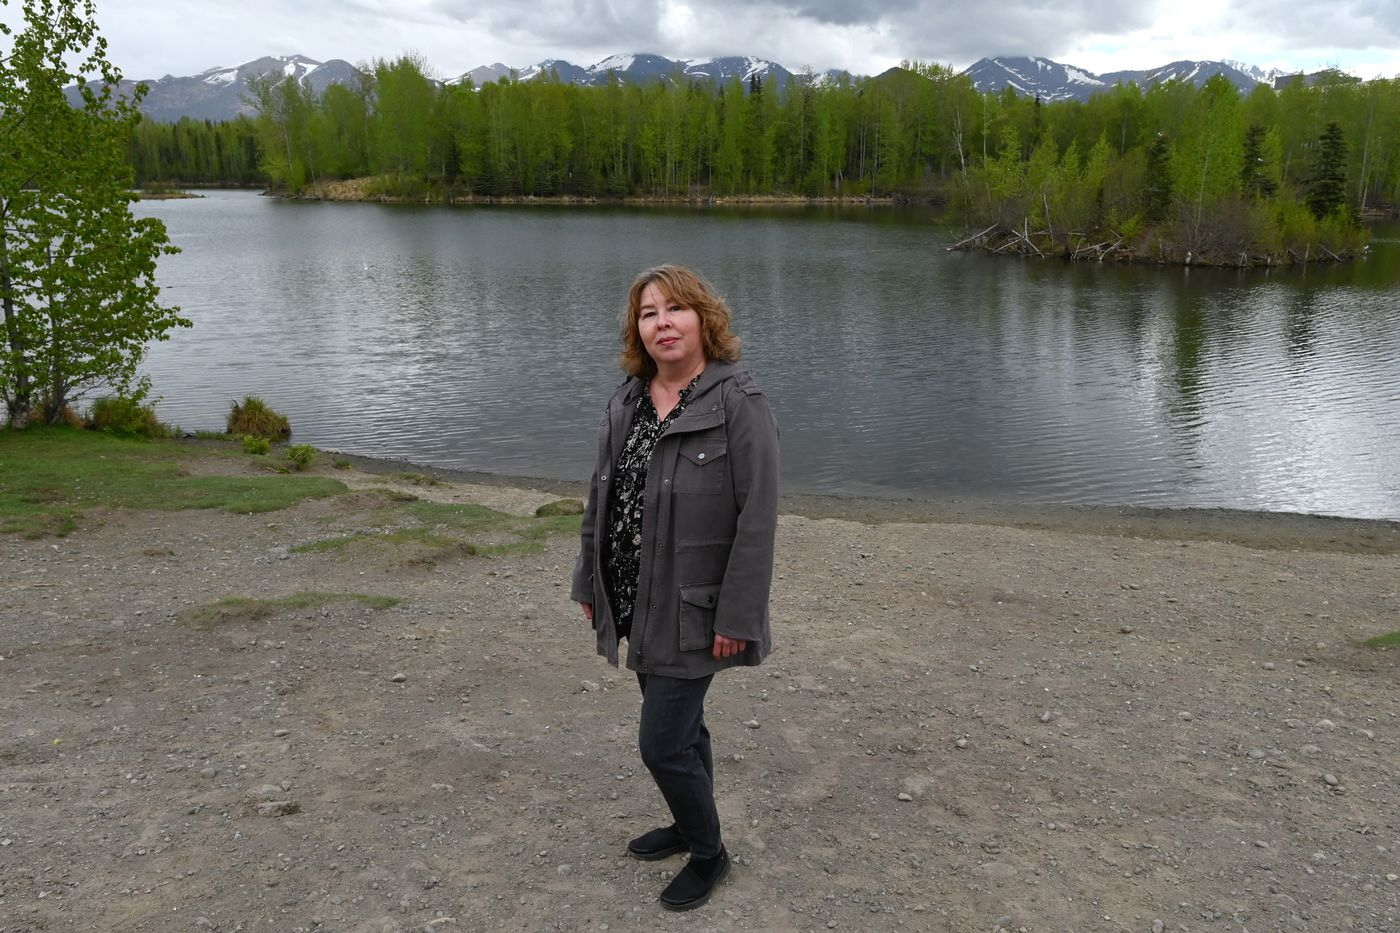 Keeley Olson joined Standing Together Against Rape (STAR) in 2007 as program director and became the executive director in 2015. Olson studied social work in Montana and has spent her career in the area of domestic violence and sexual assault in Montana, Washington and Alaska. Photographed at University Lake on Tuesday, May 19, 2020. (Bill Roth / ADN)